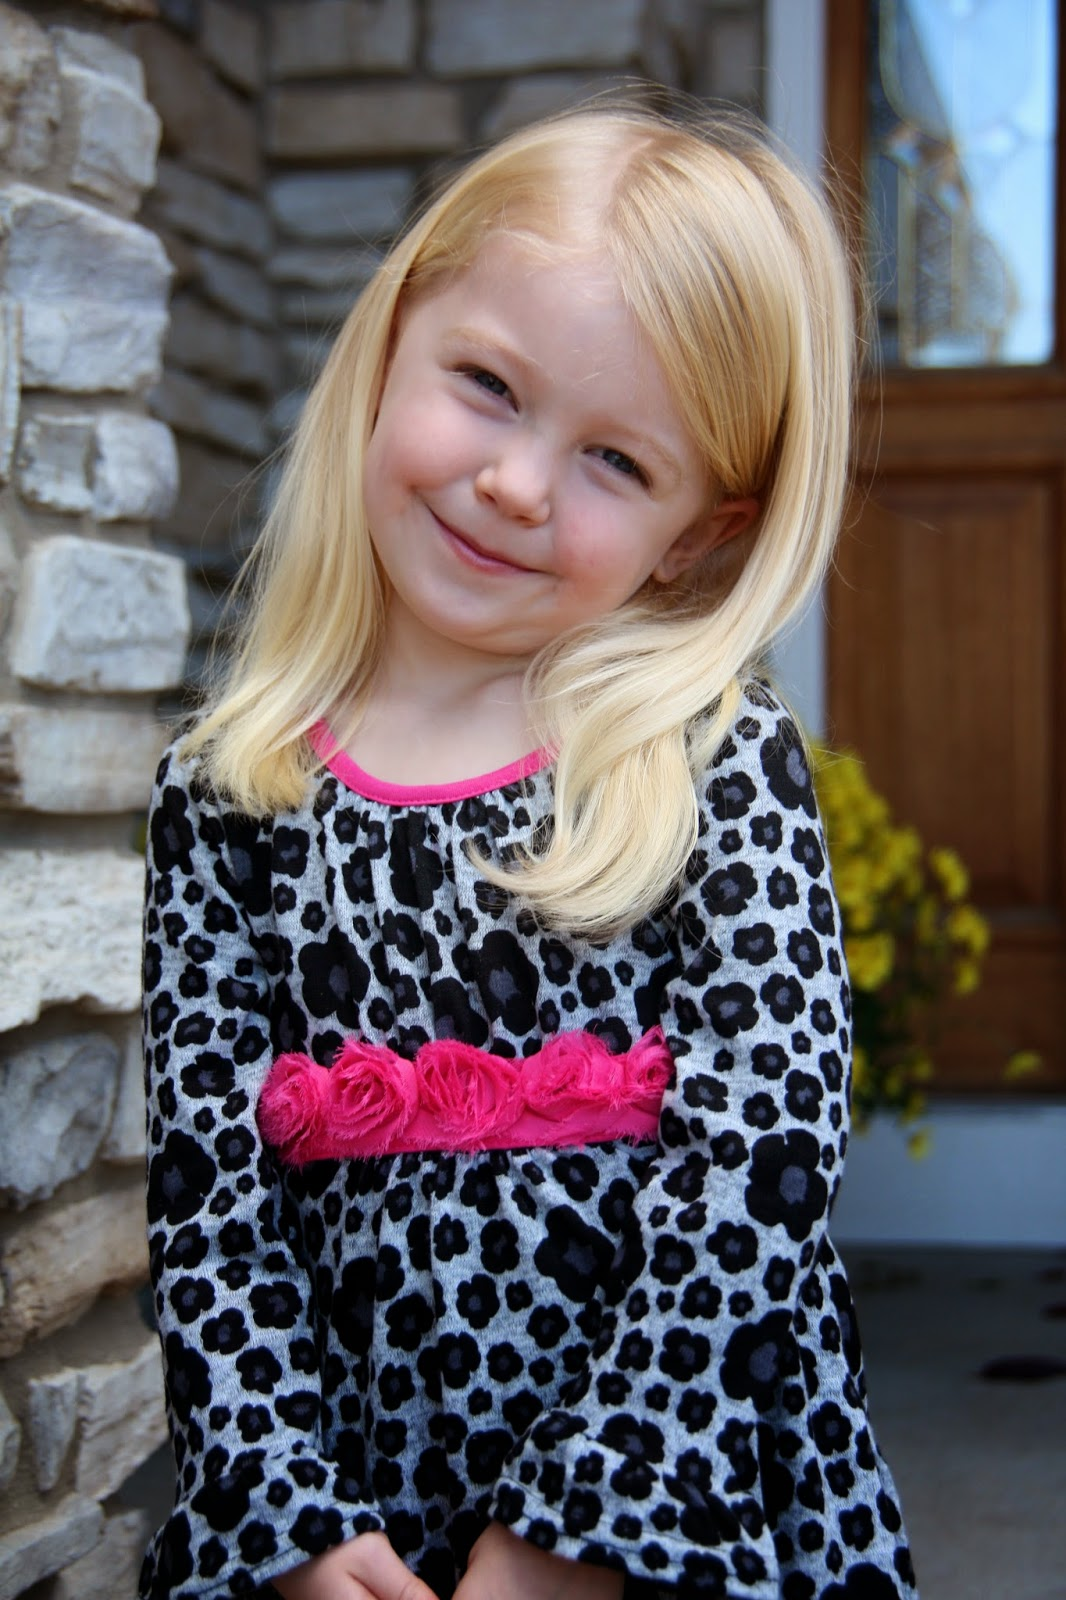 Keeping up with the Joneses: My 4 Year Old